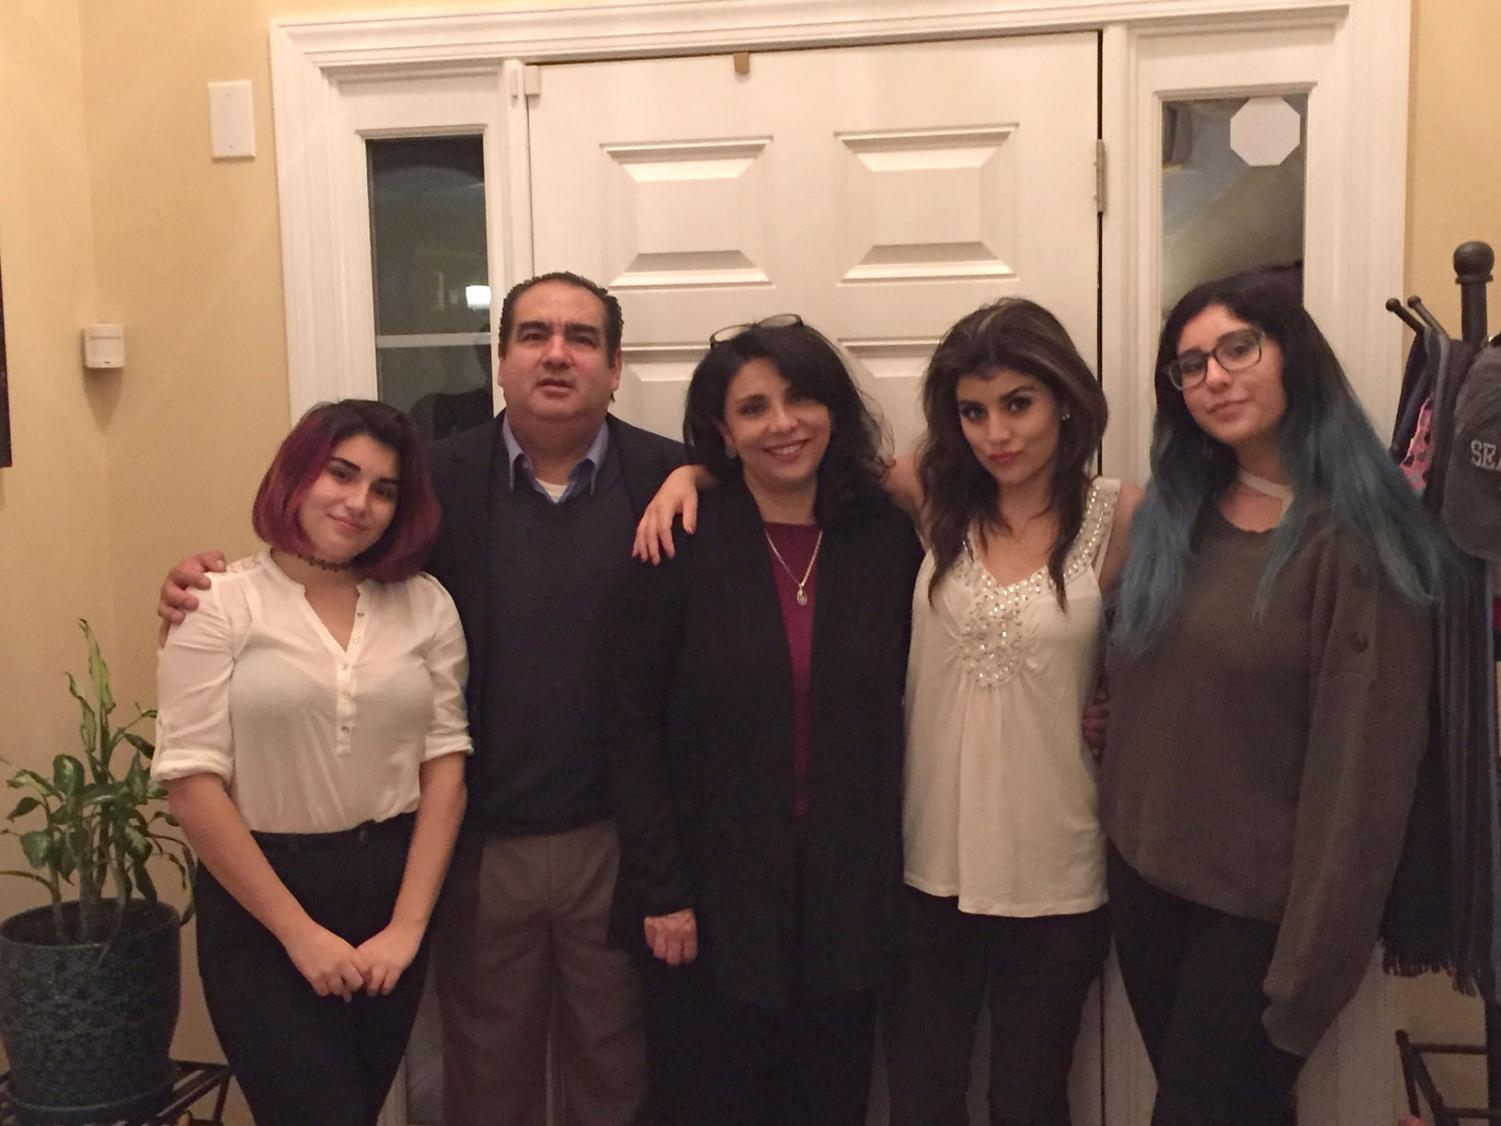 From left to right: Miranda, Adrian (father), Claudia (mother), Melissa and Mariana (sisters)